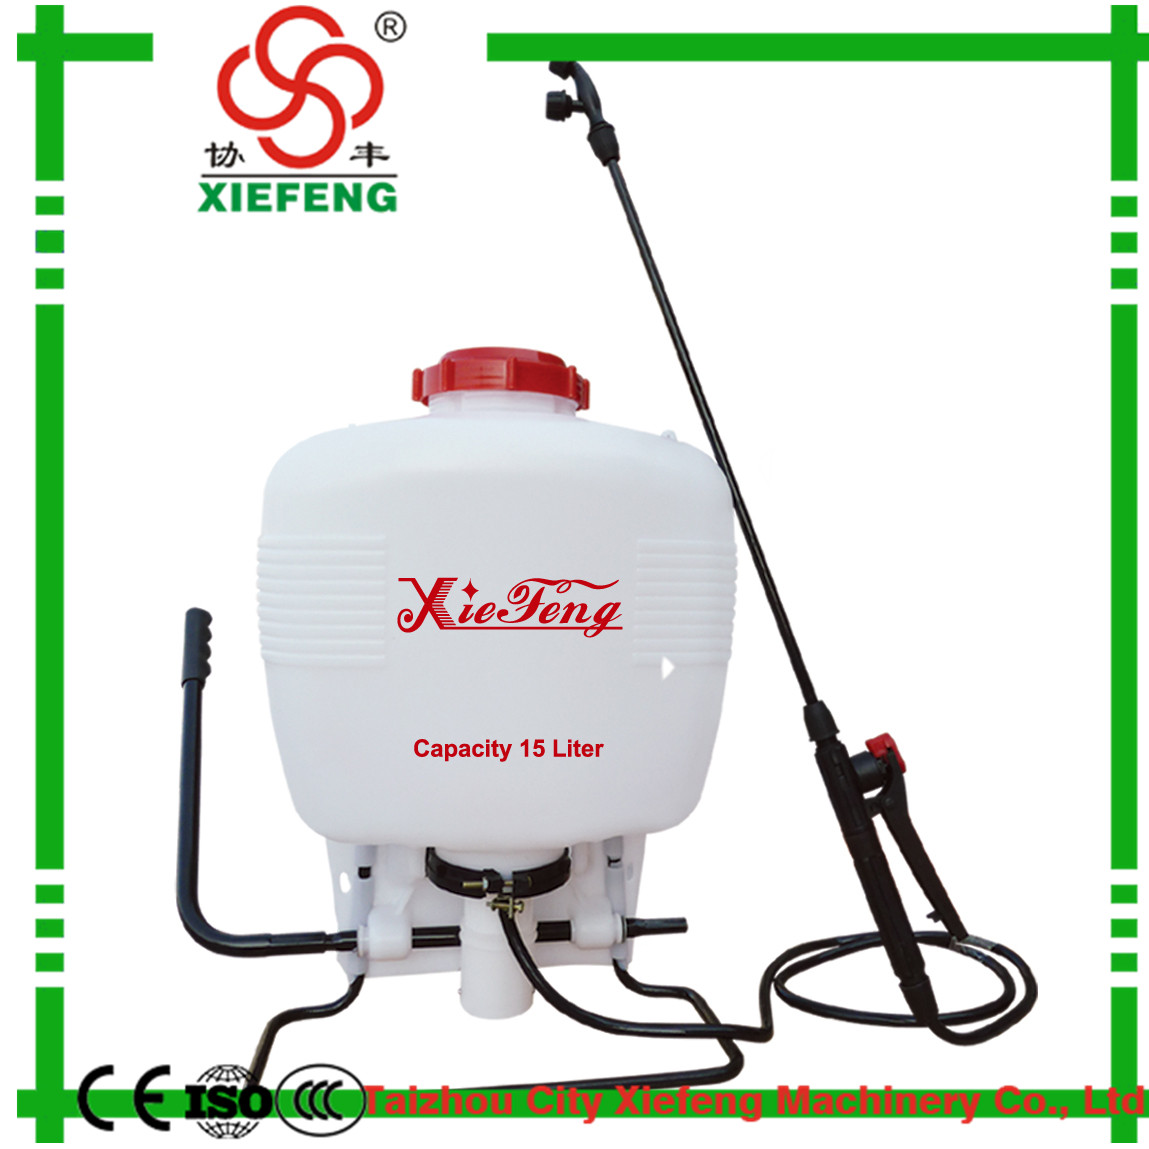 The high quality small pump sprayer